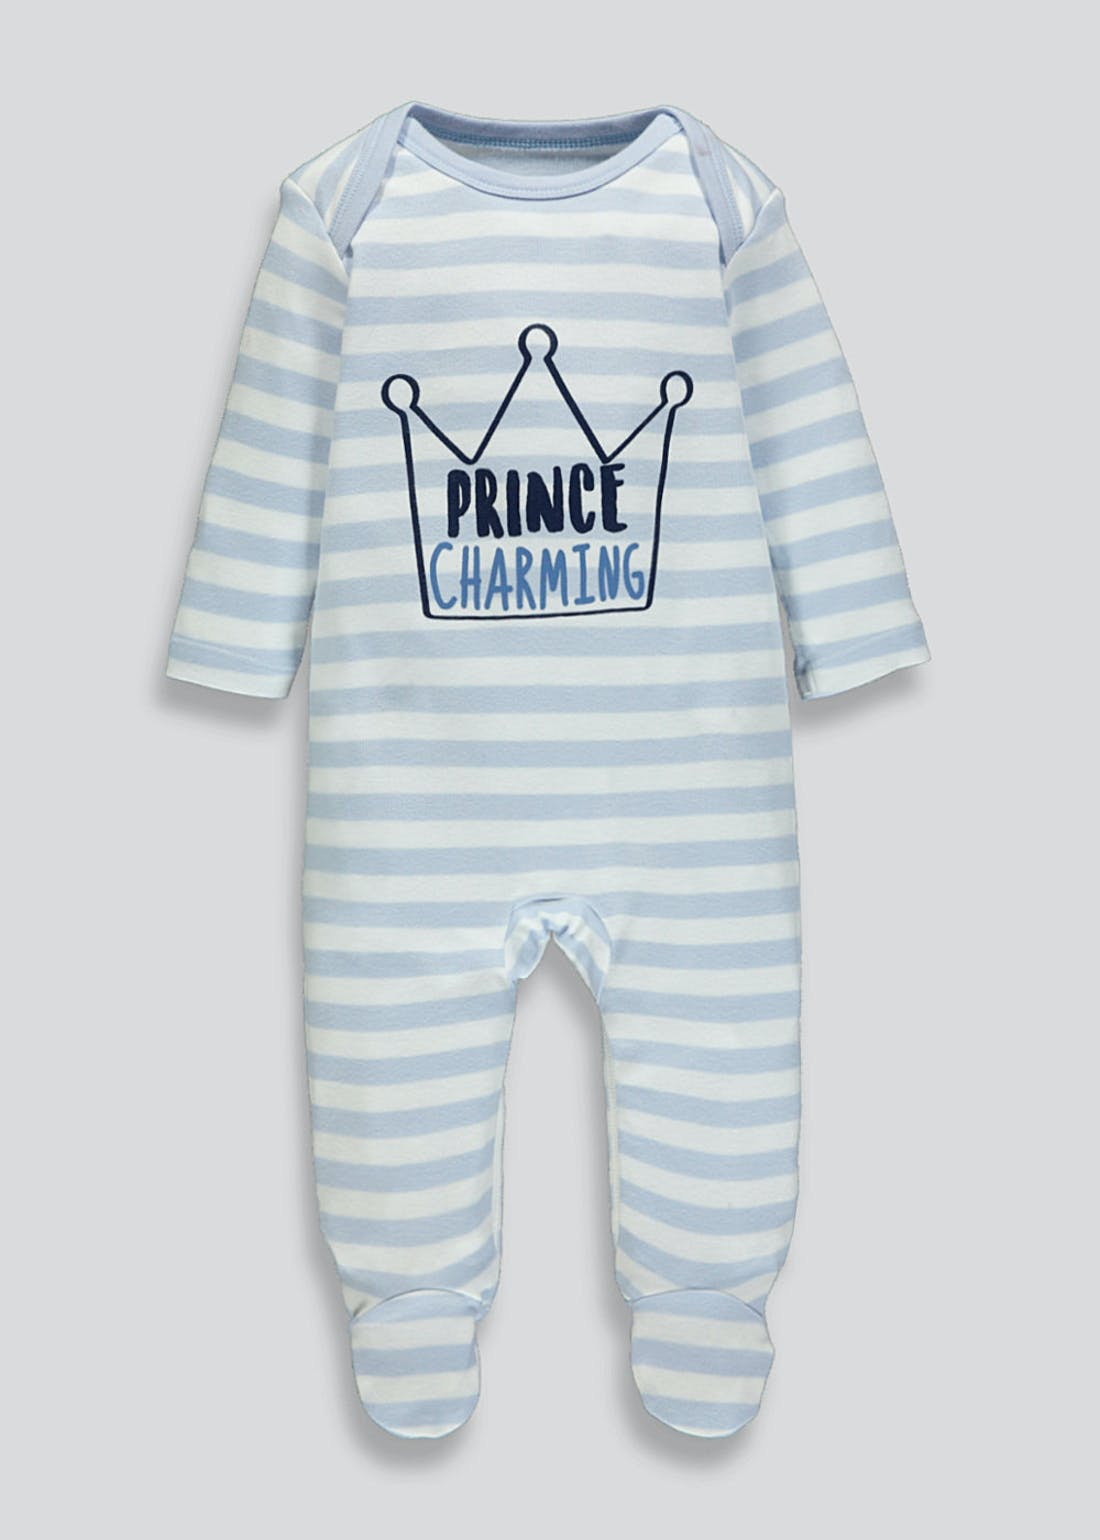 Boys Prince Charming Baby Grow (Tiny Baby-12mths)